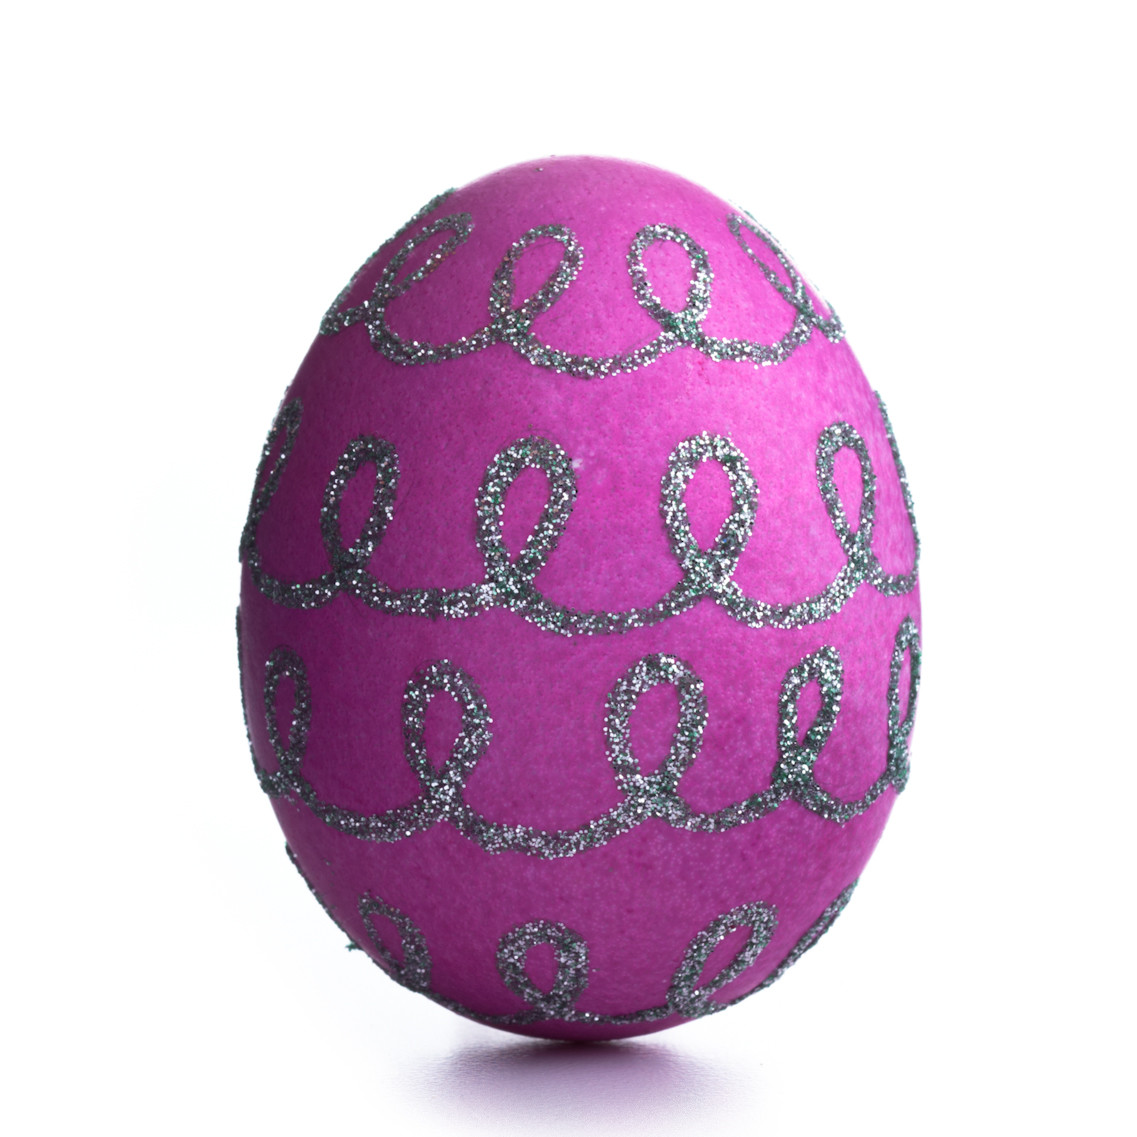 Embossed and glittered easter egg decorating ideas for Easter egg ideas